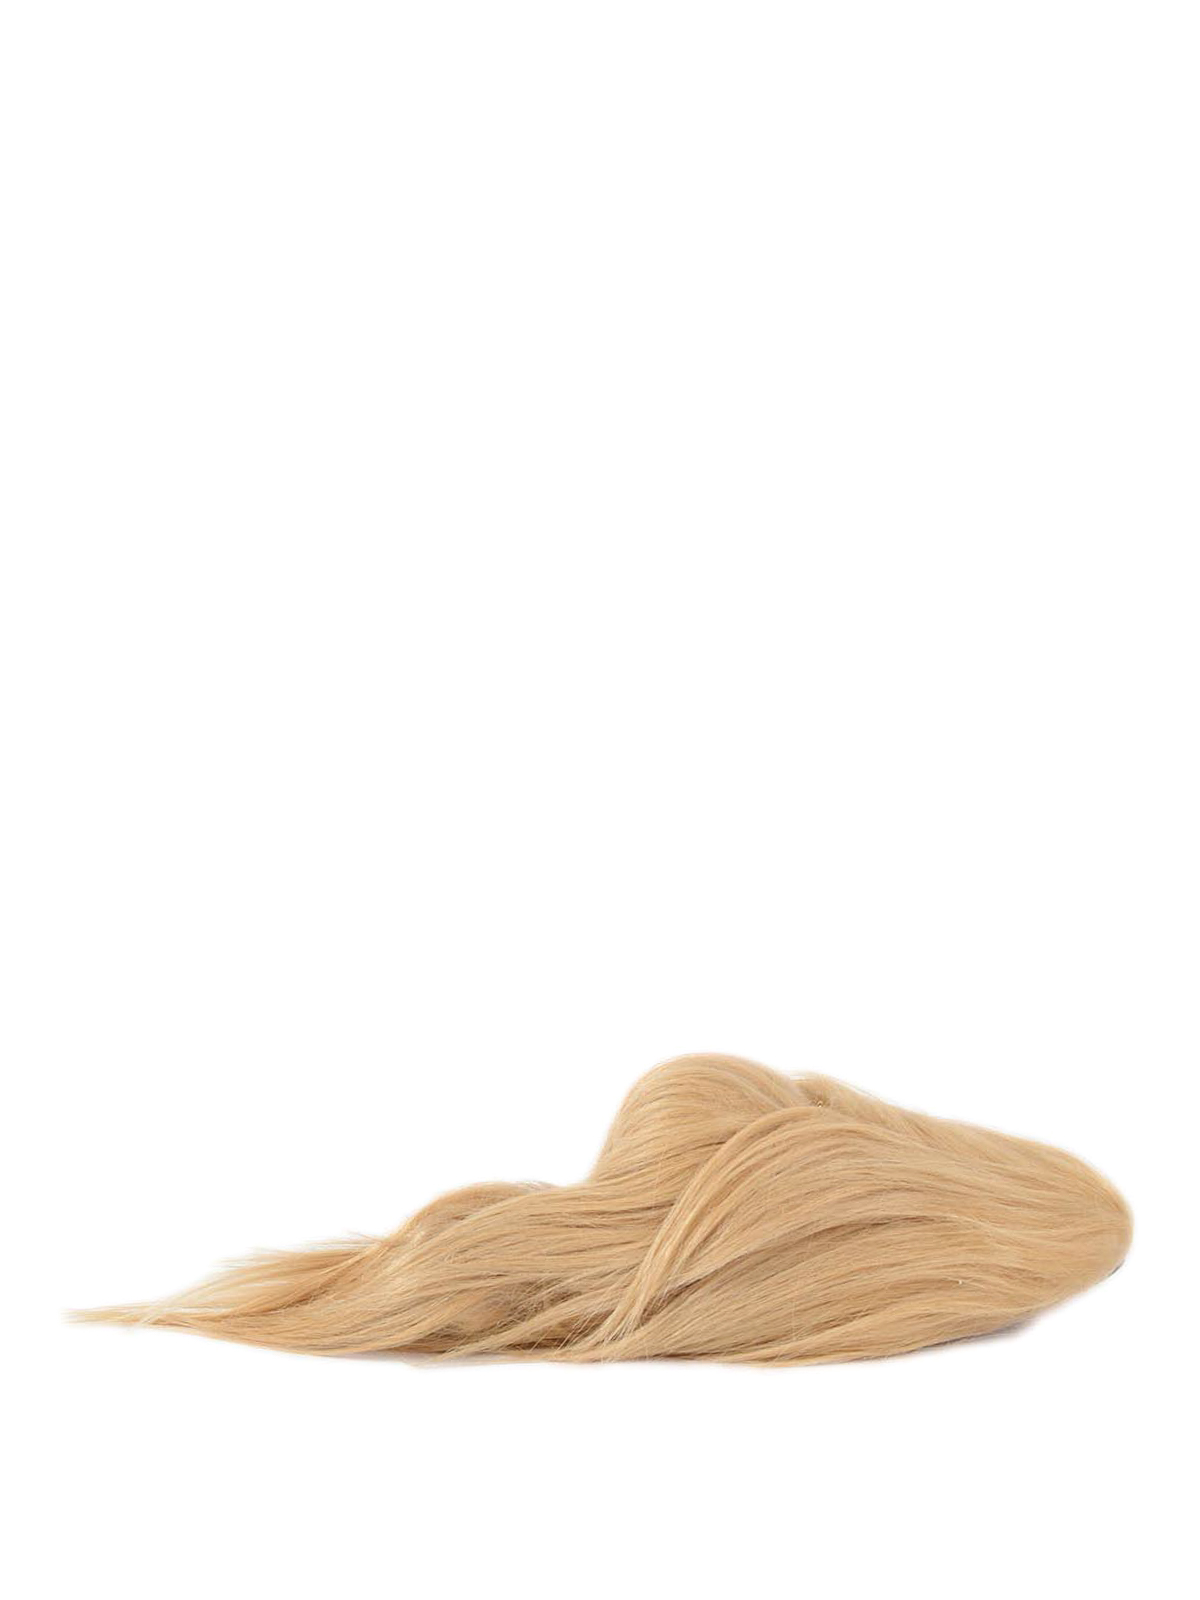 Hair Goat Slippers By Gucci - Loafers U0026 Slippers | IKRIX